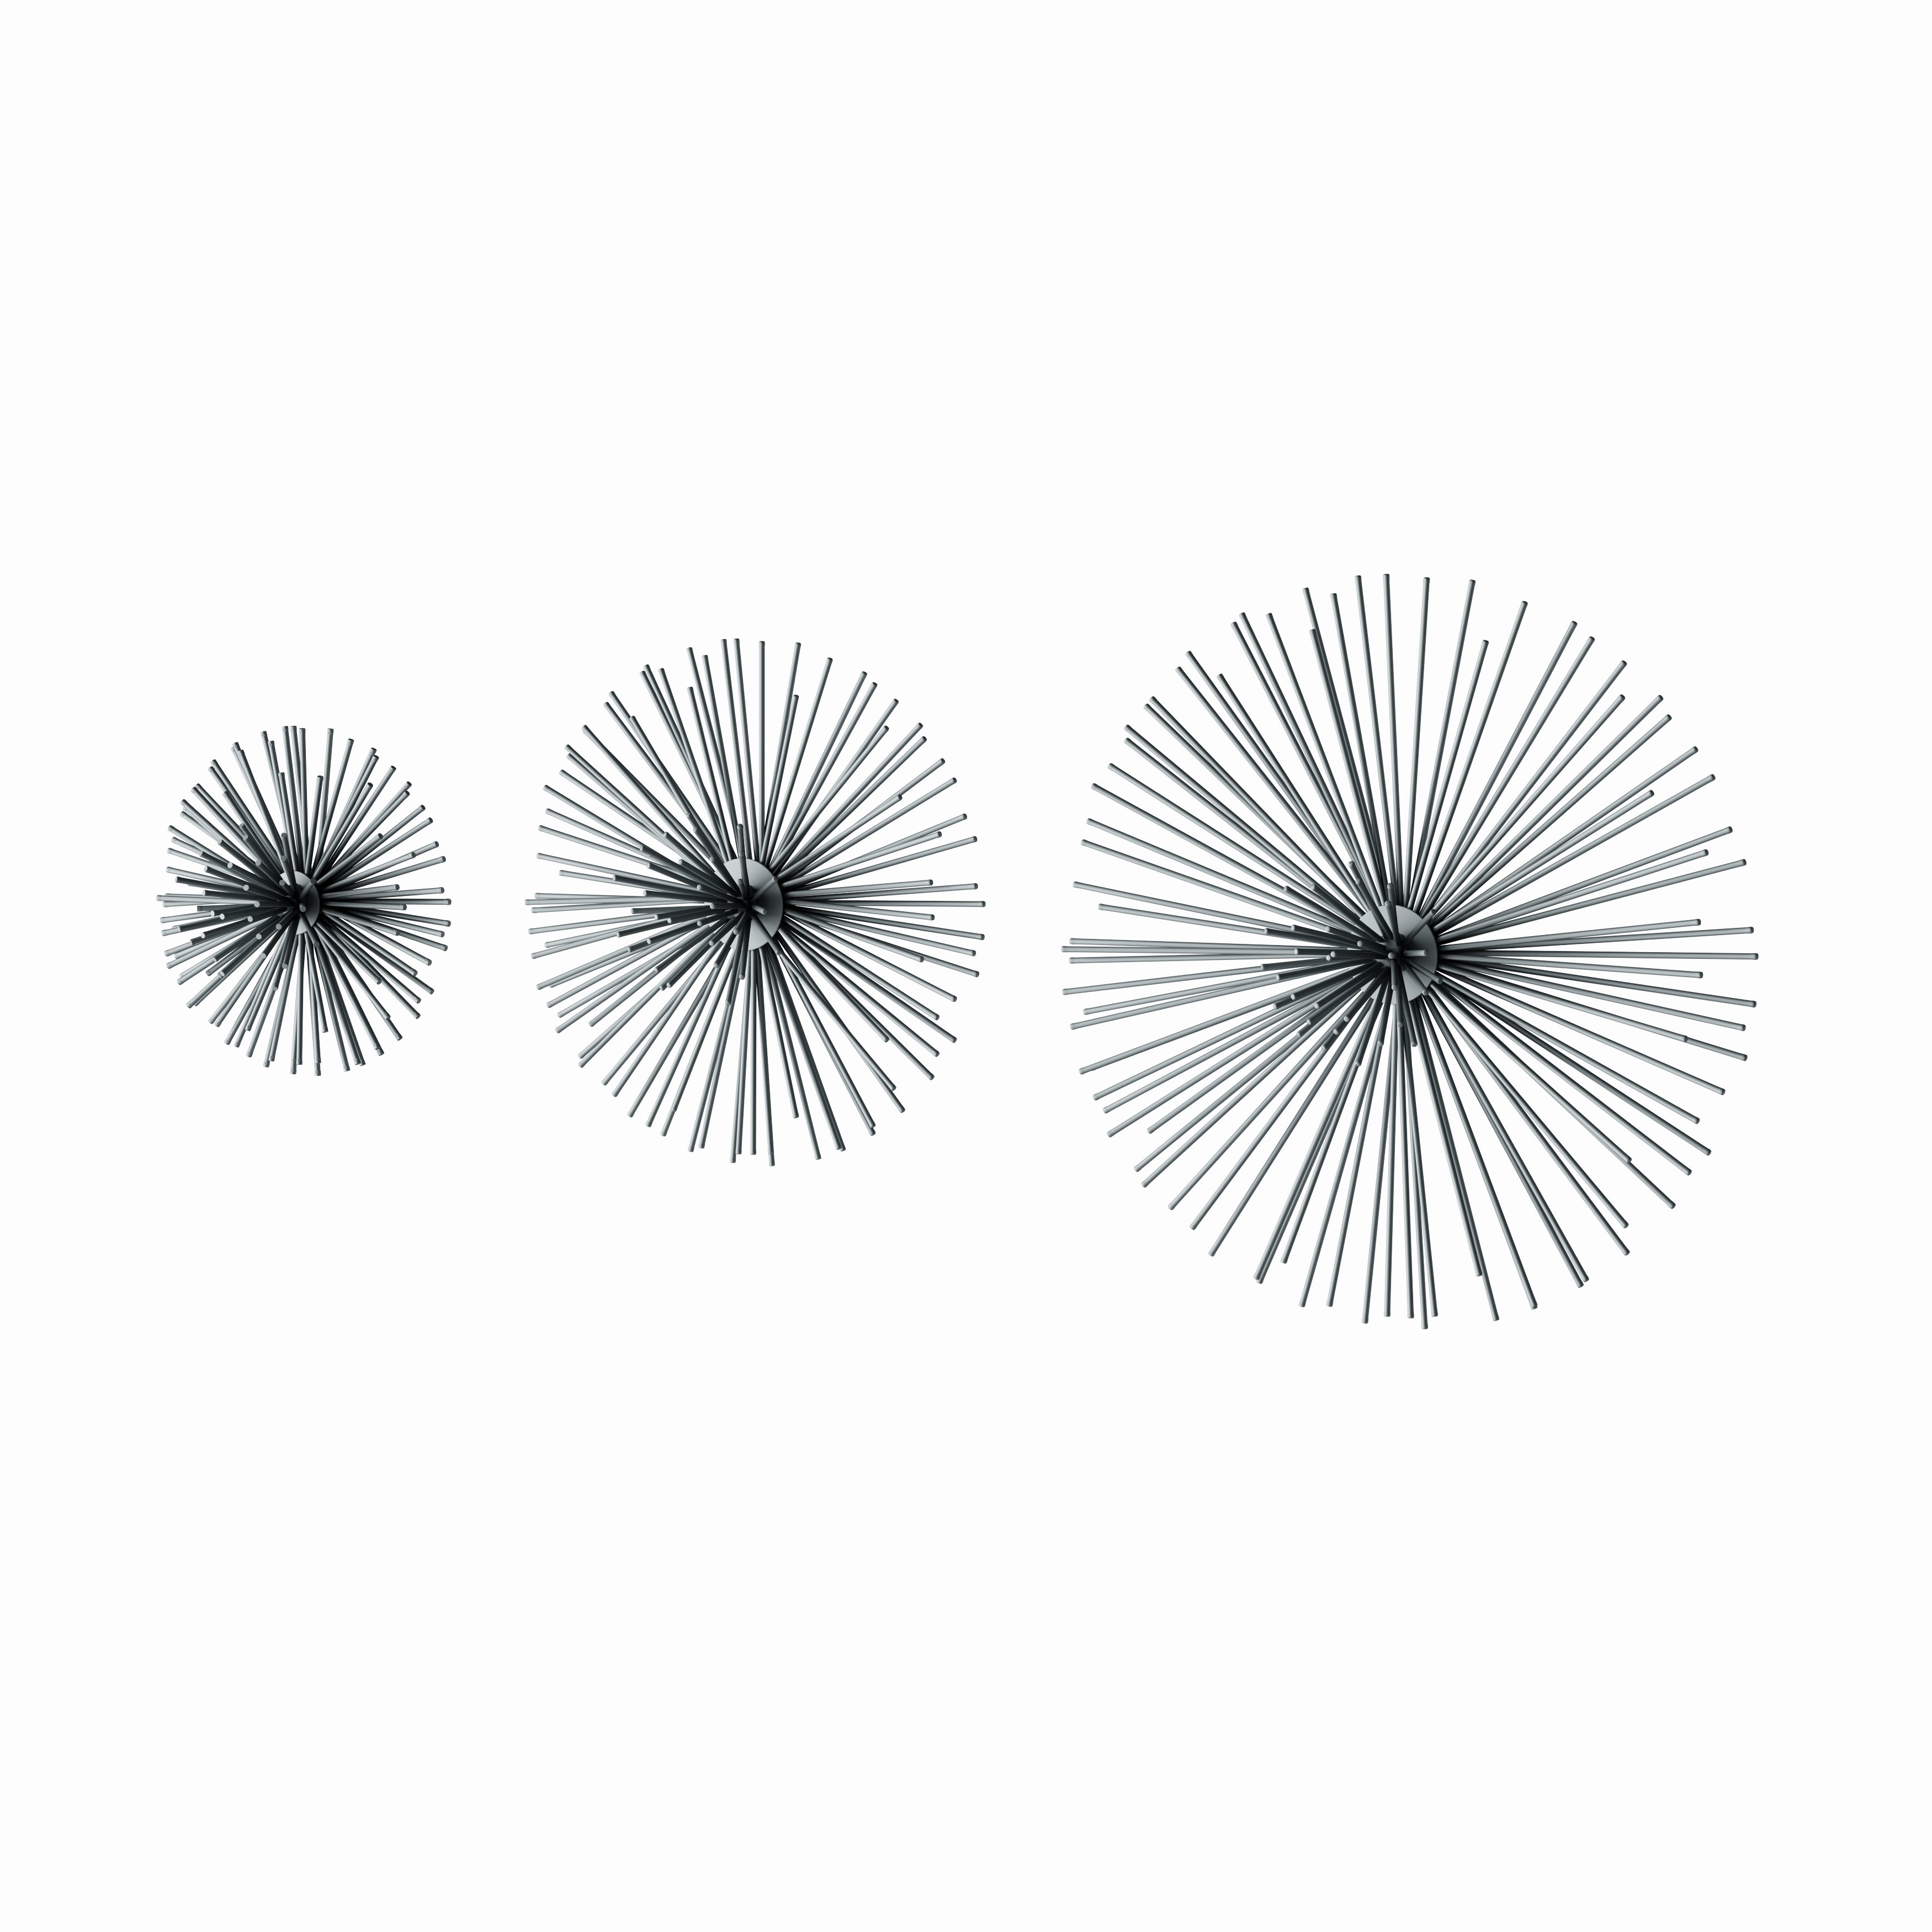 2 Piece Starburst Wall Decor Sets Within Well Liked Shop Contemporary 3d Silver Metal Starburst Wall Decor Sculptures (View 11 of 20)